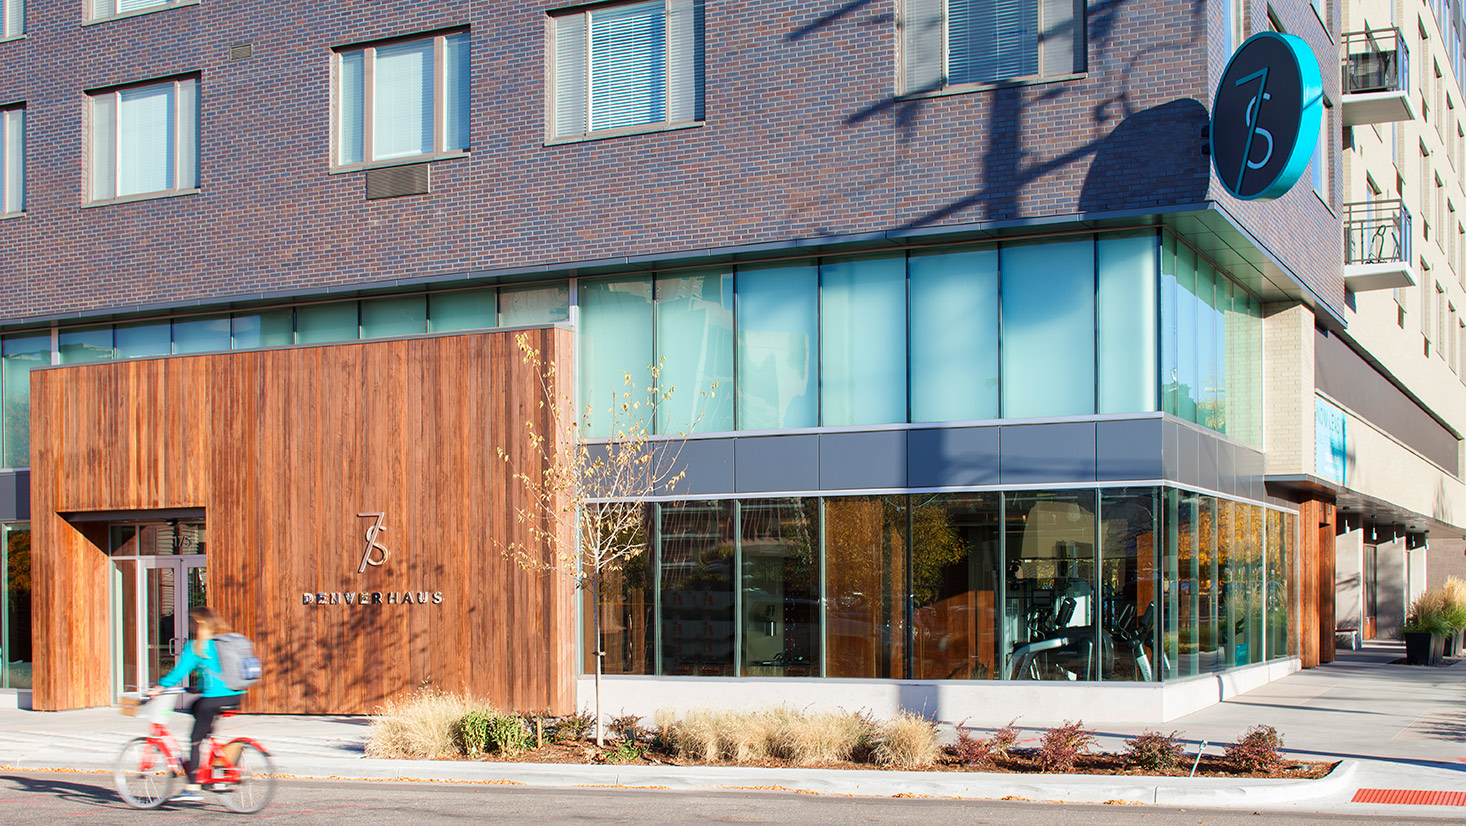 Denver Haus designed by Craine Architecture